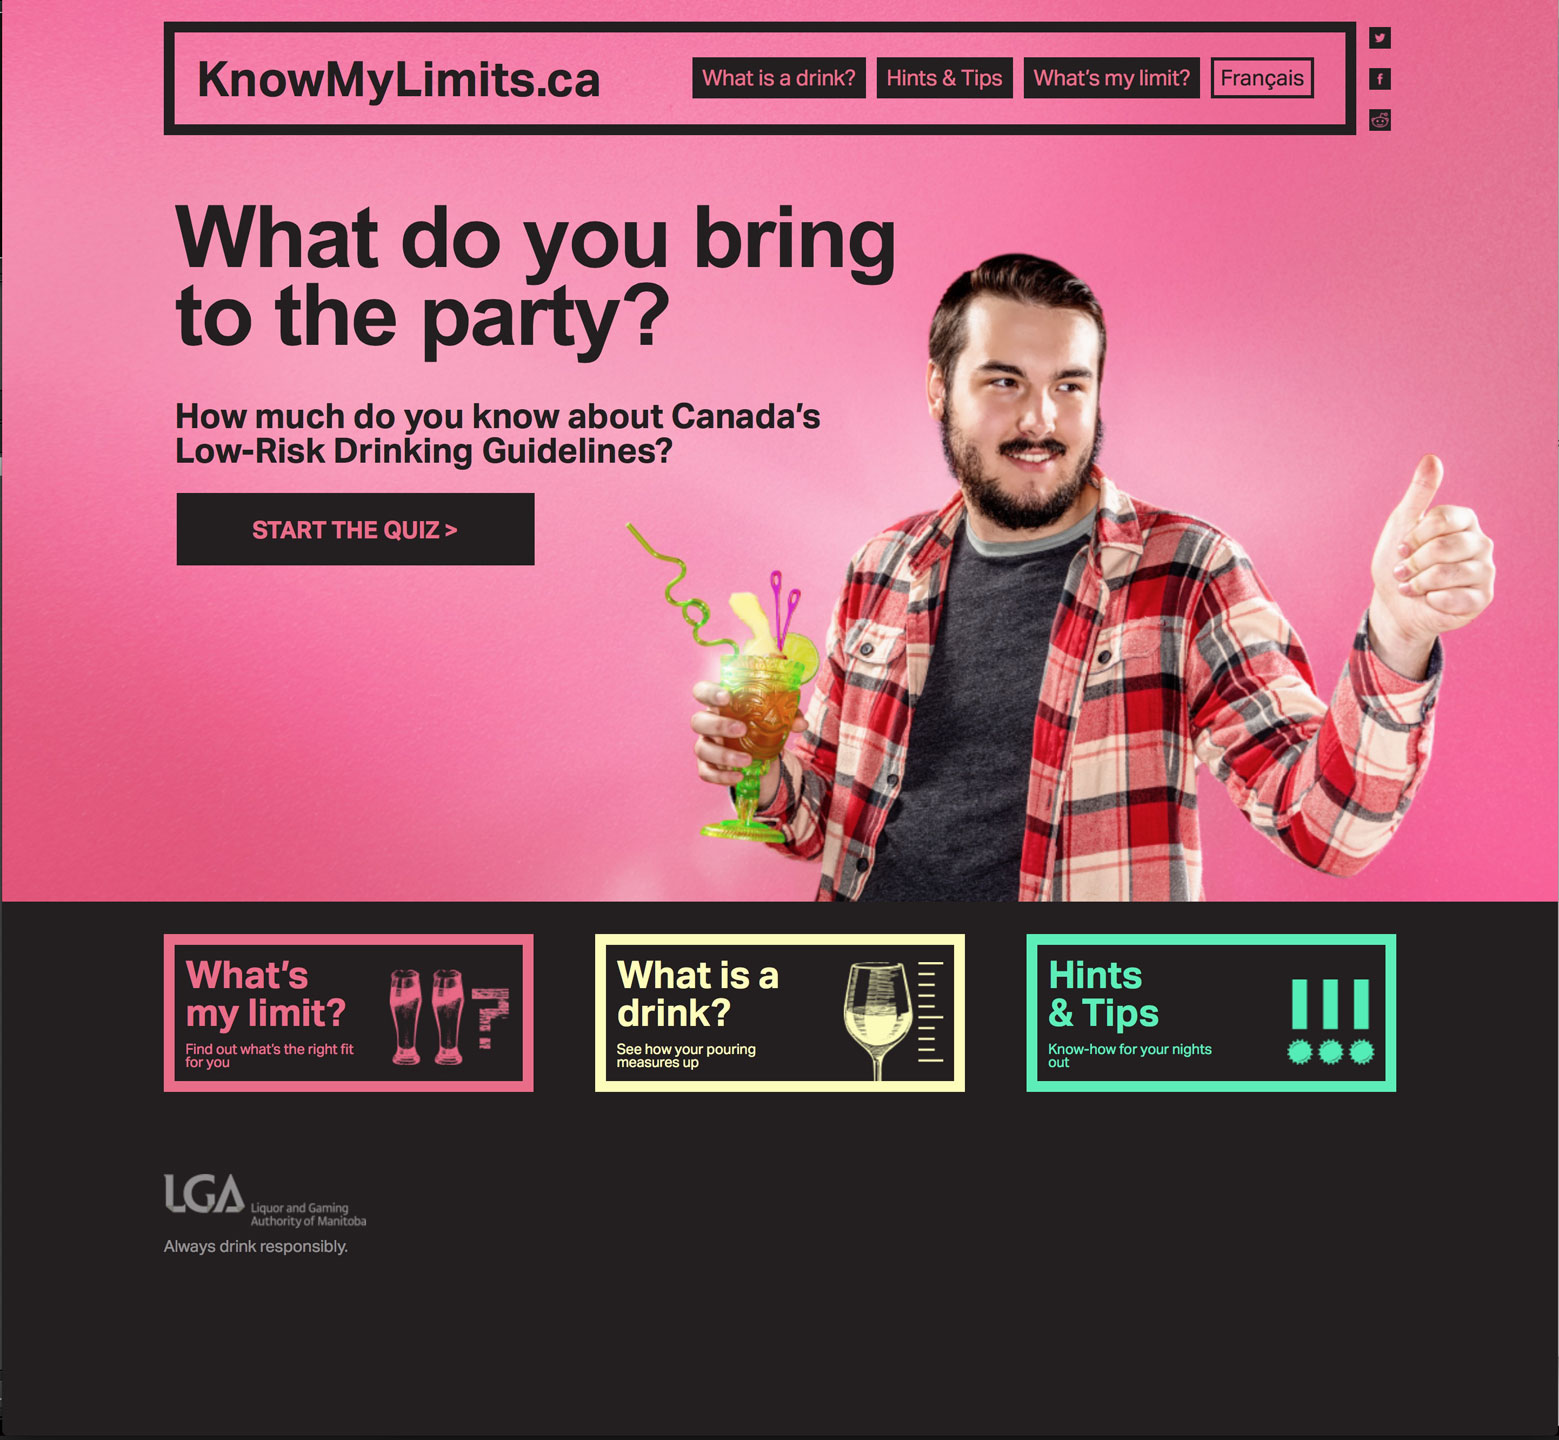 knowmylimits.ca_By_Ian_McCausland_8